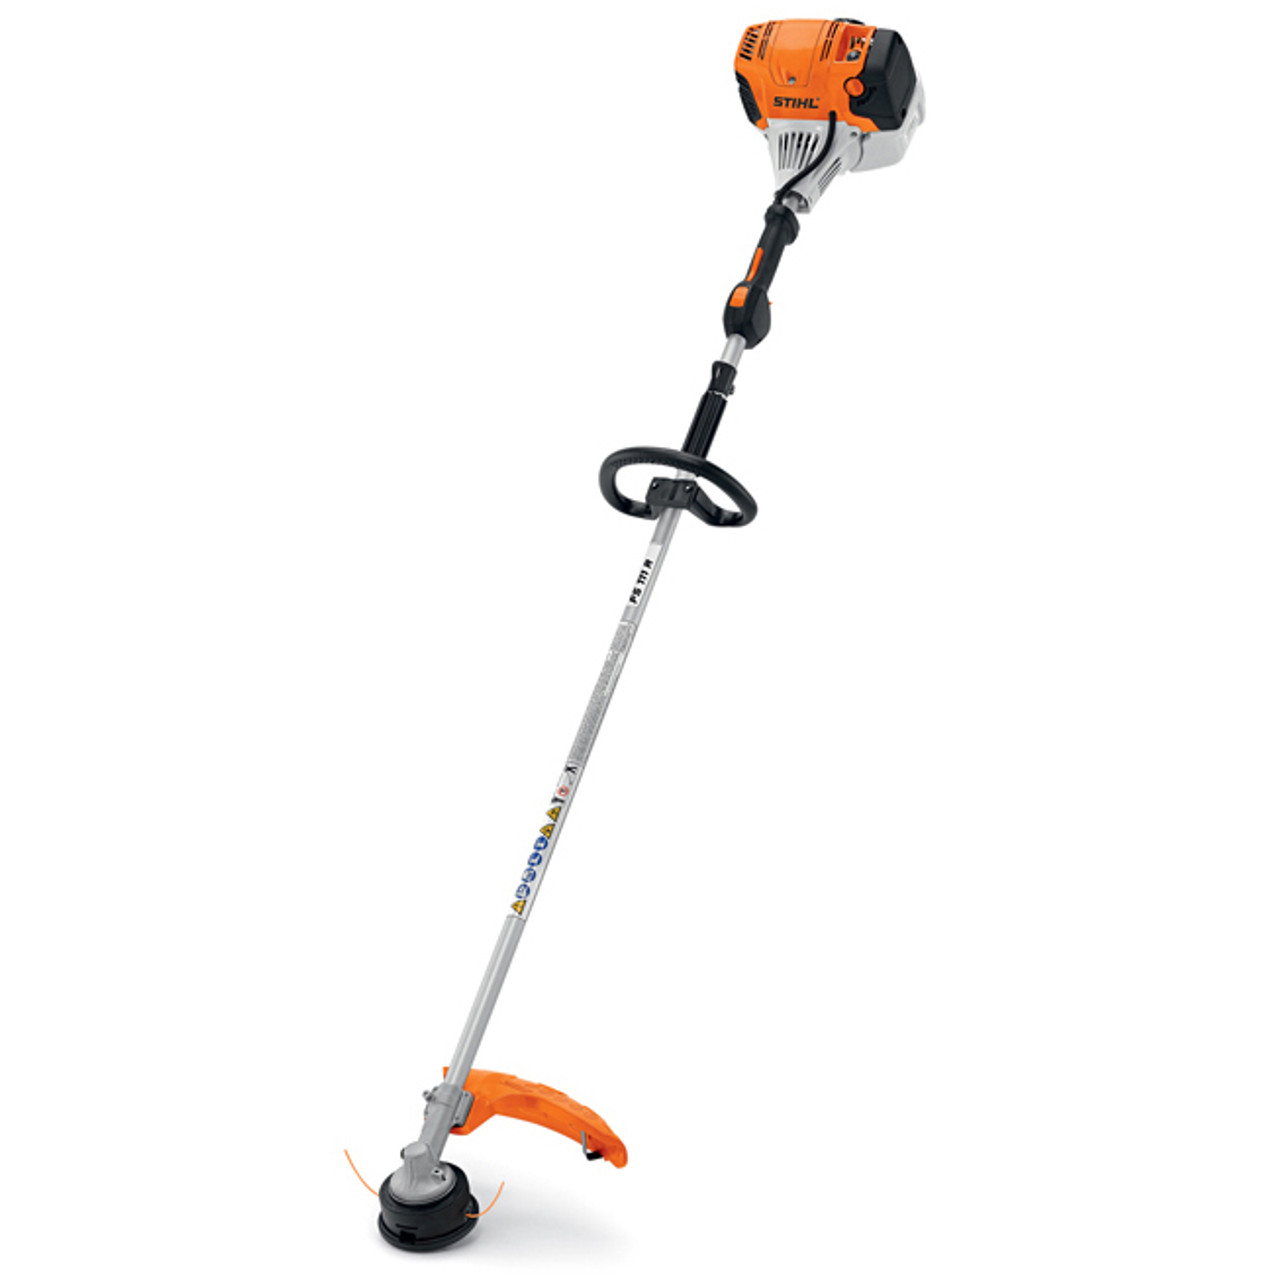 STIHL FS 111 R 31.4cc Commercial String Trimmer Image